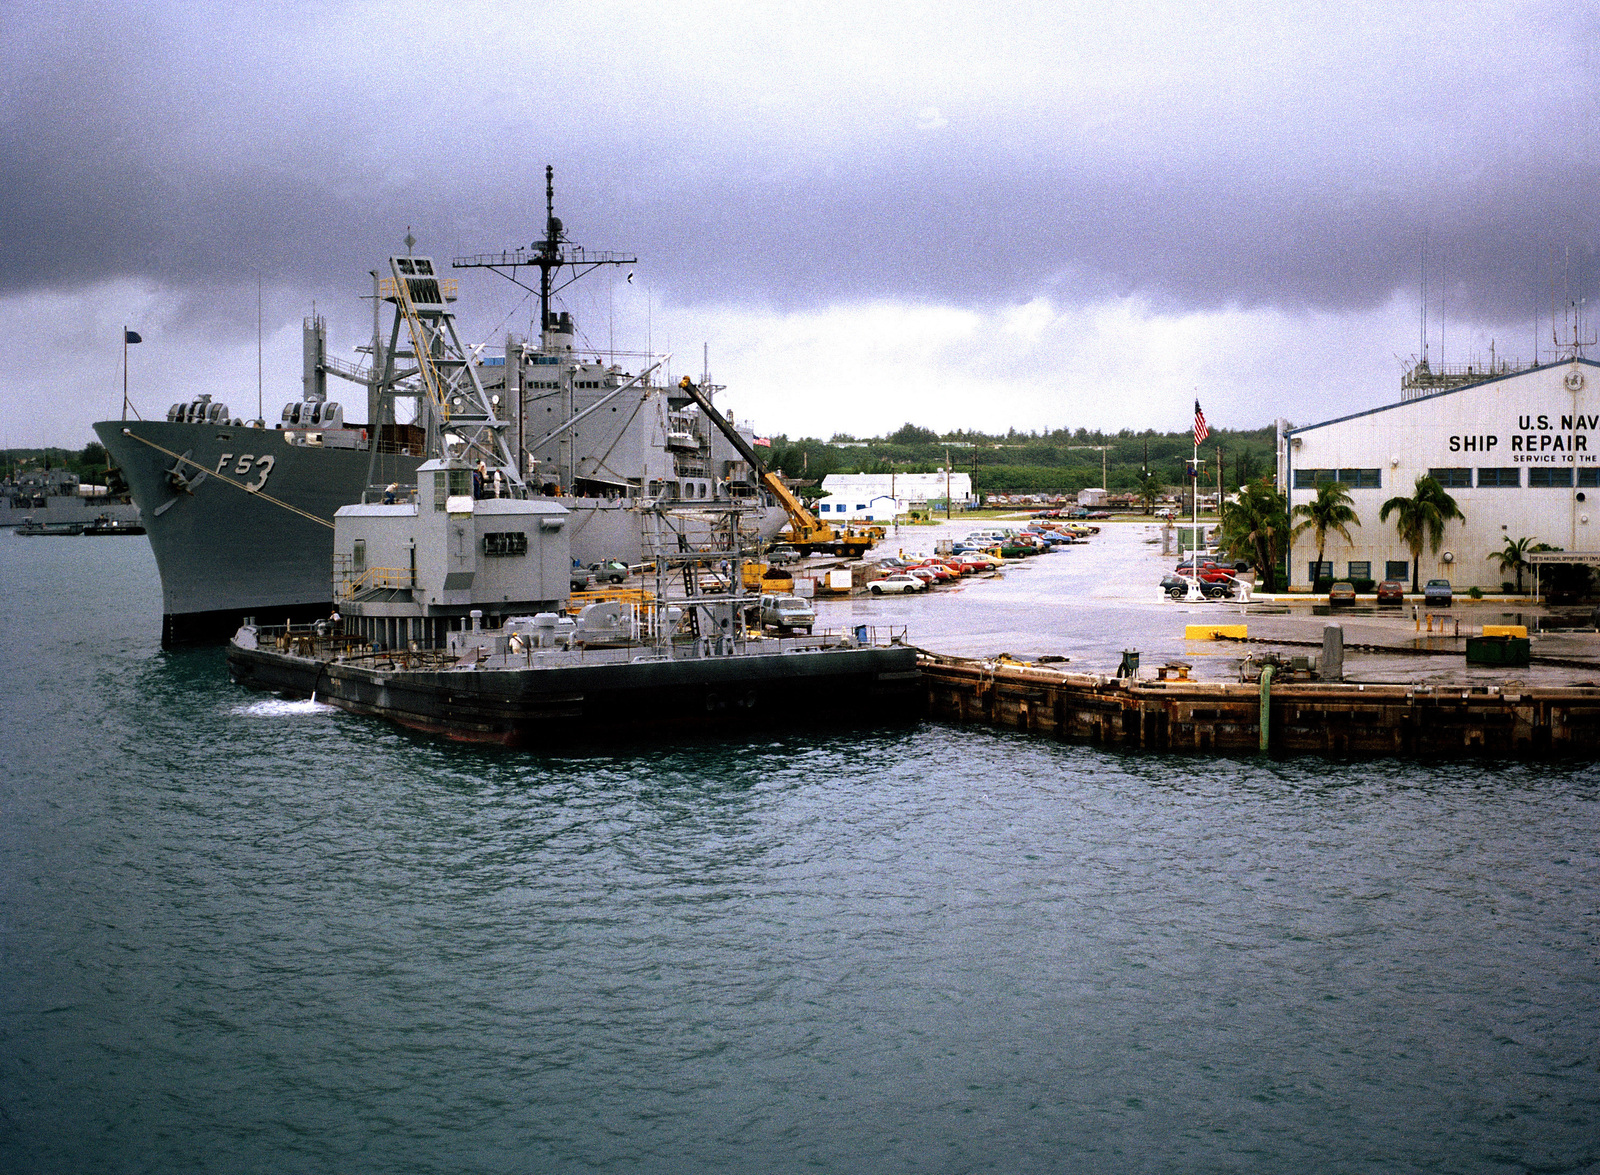 A view of a section of the US Naval Ship Repair Facility with the combat stores ship USS NIAGARA FALLS (AFS 3) moored at left